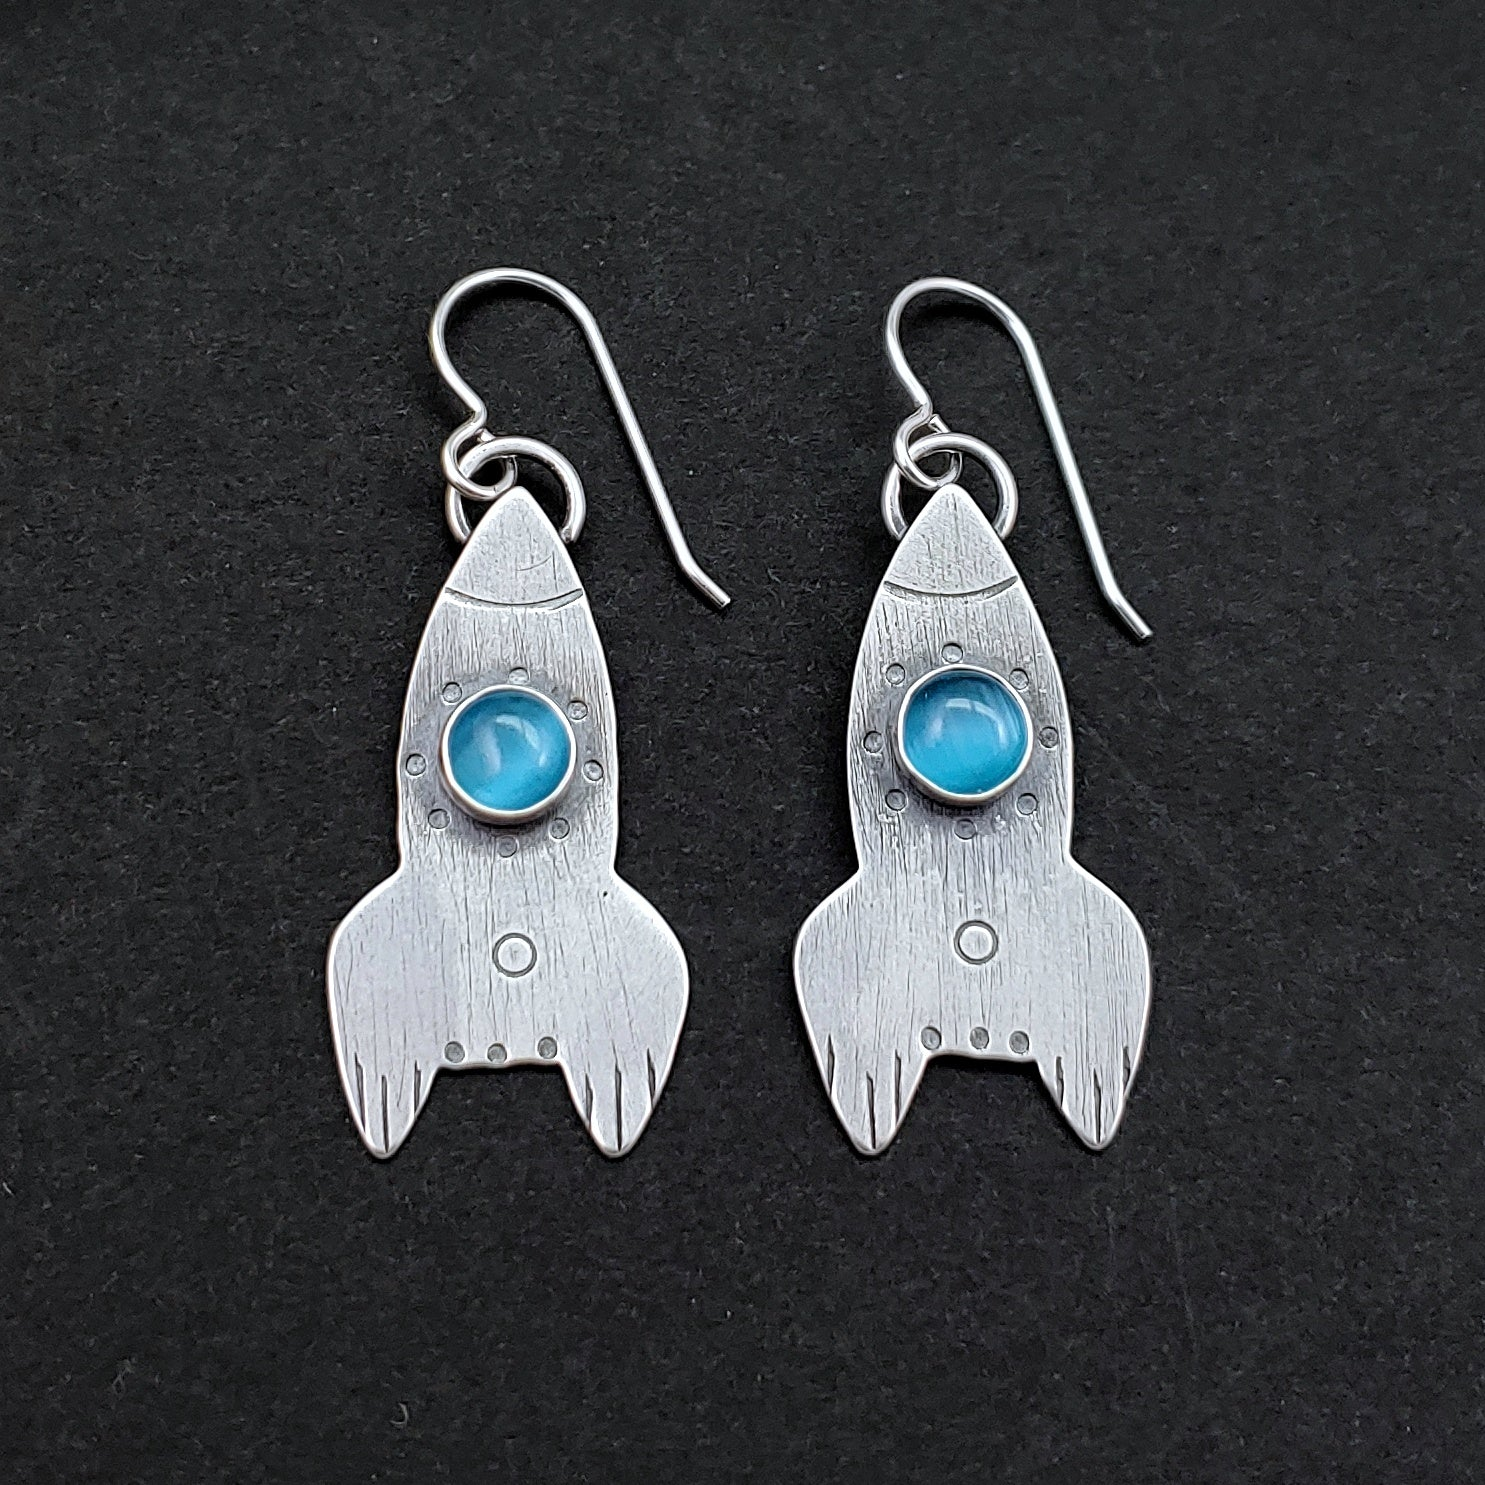 Rocket Ship Earrings - Turquoise Cat's Eye